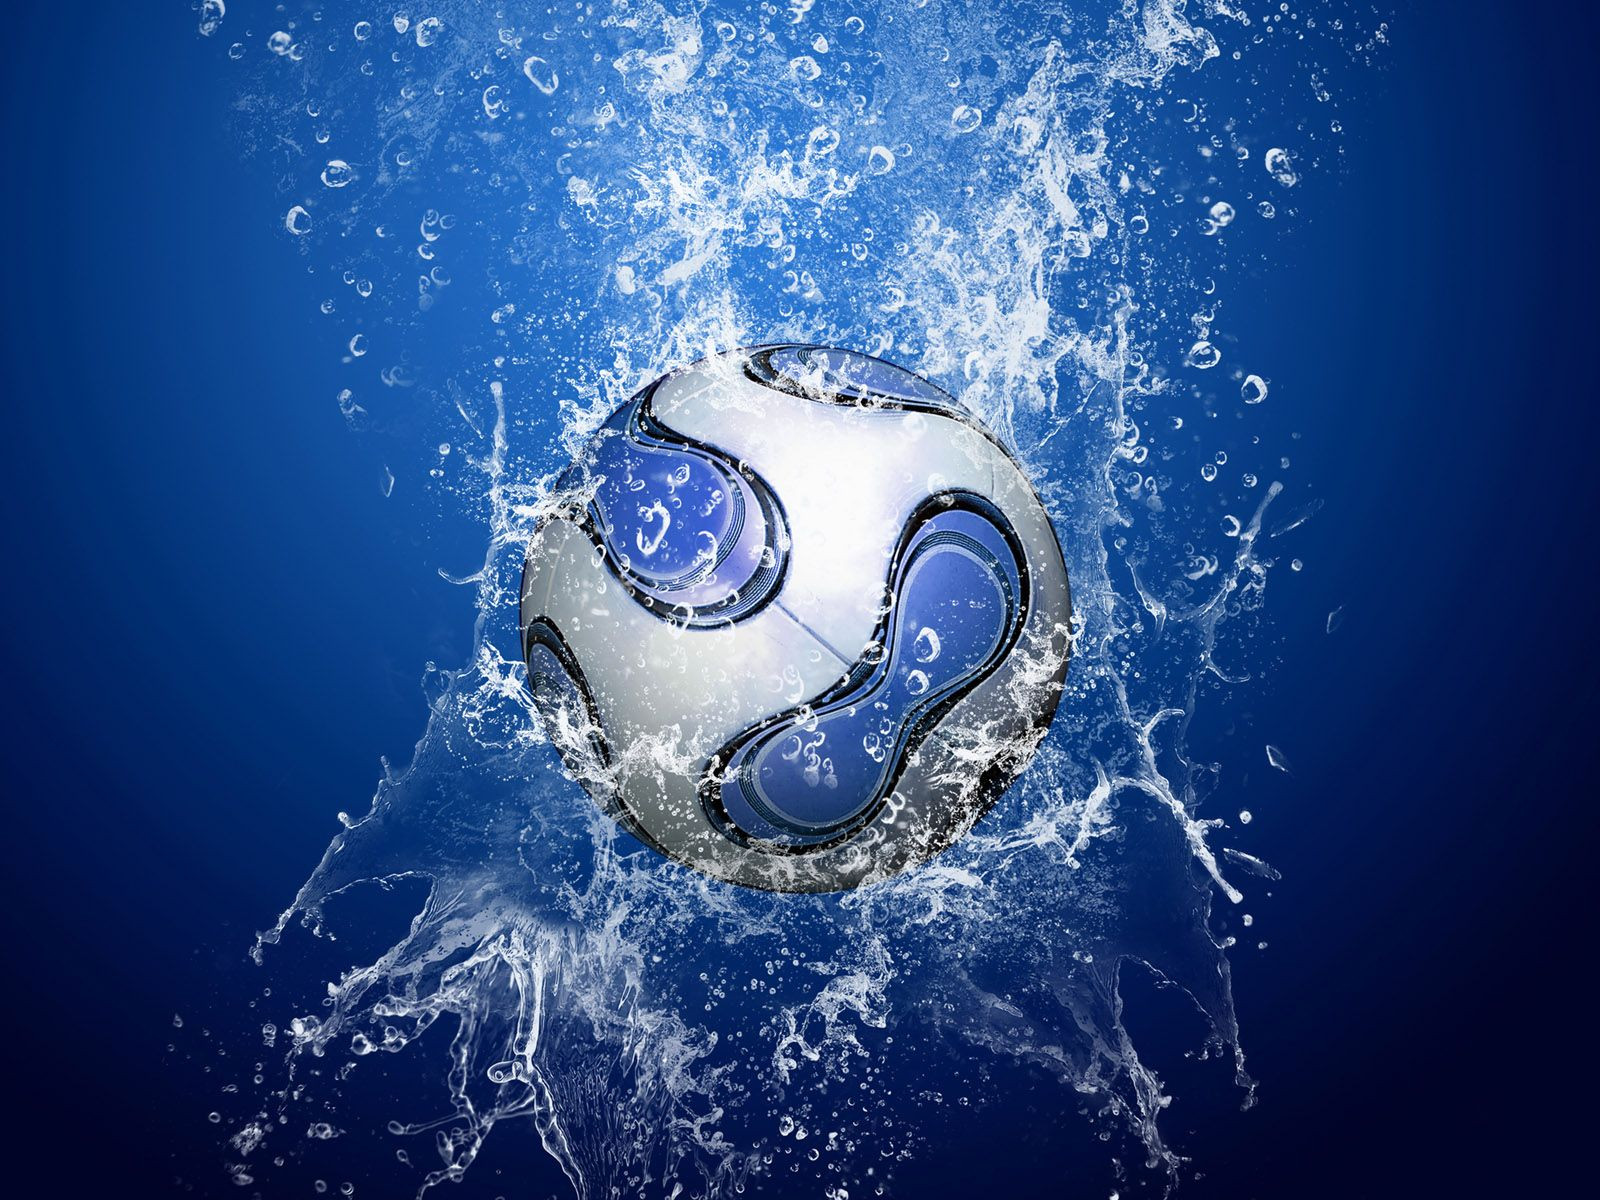 Cool Soccer Ball Backgrounds Hd Pictures 4 HD Wallpapers